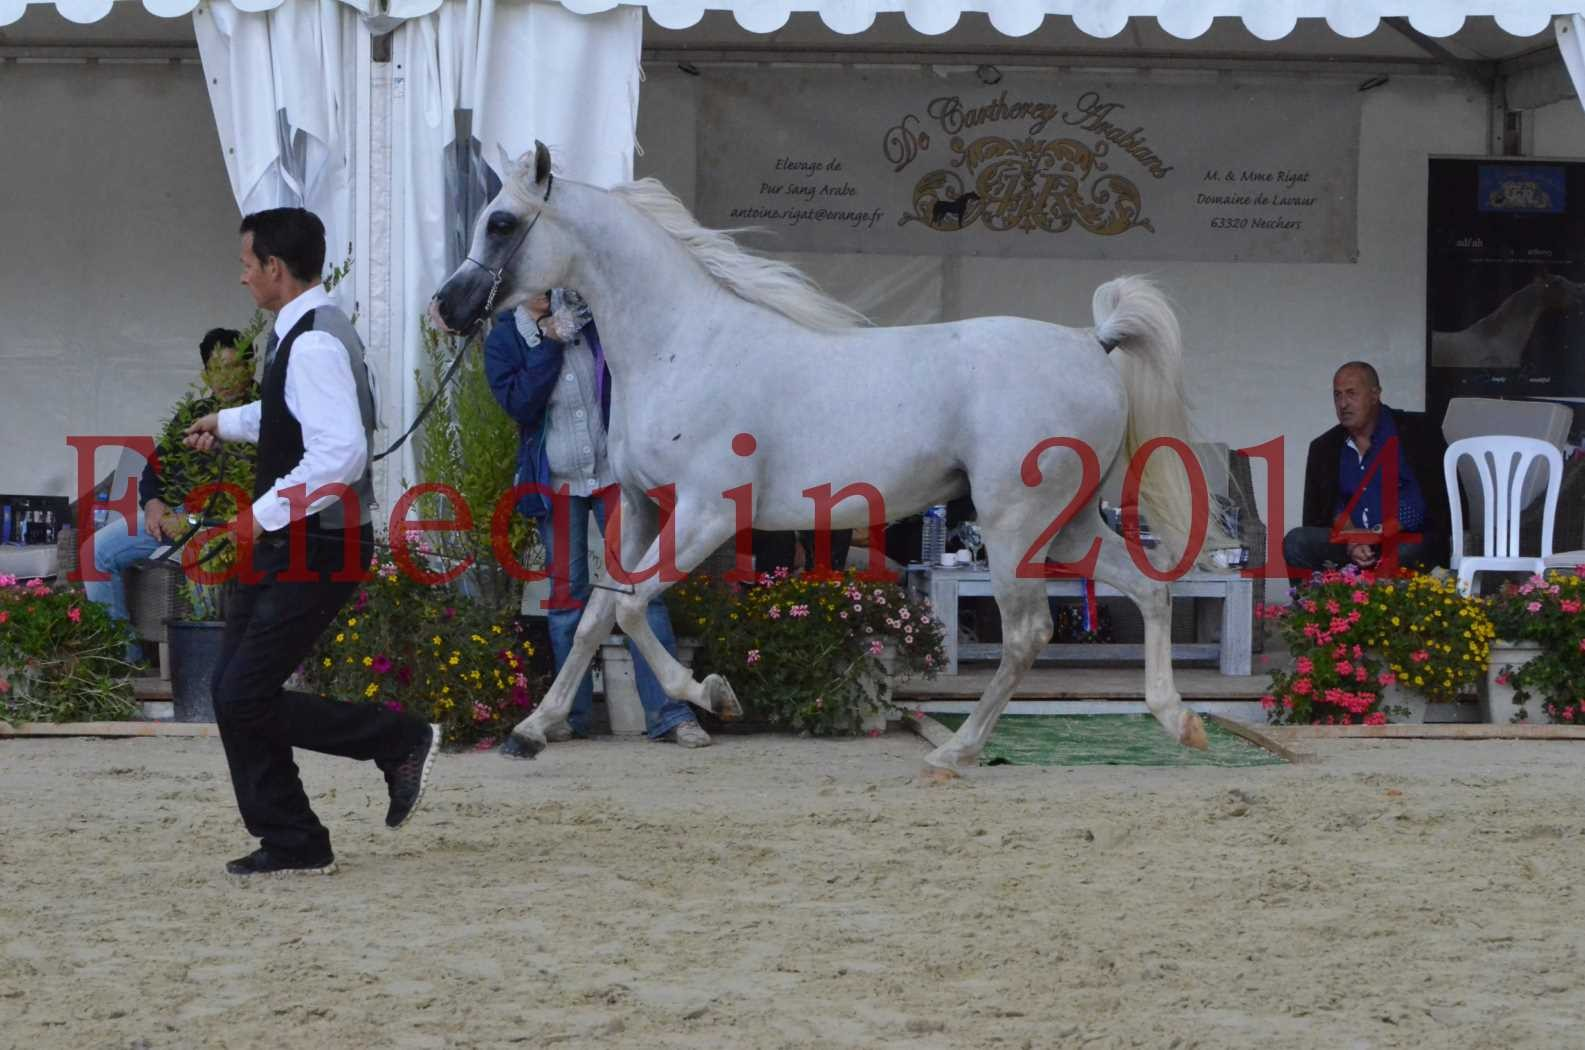 CHAMPIONNAT DE FRANCE 2014 A POMPADOUR - Sélection - FA STARLIGHT - 16